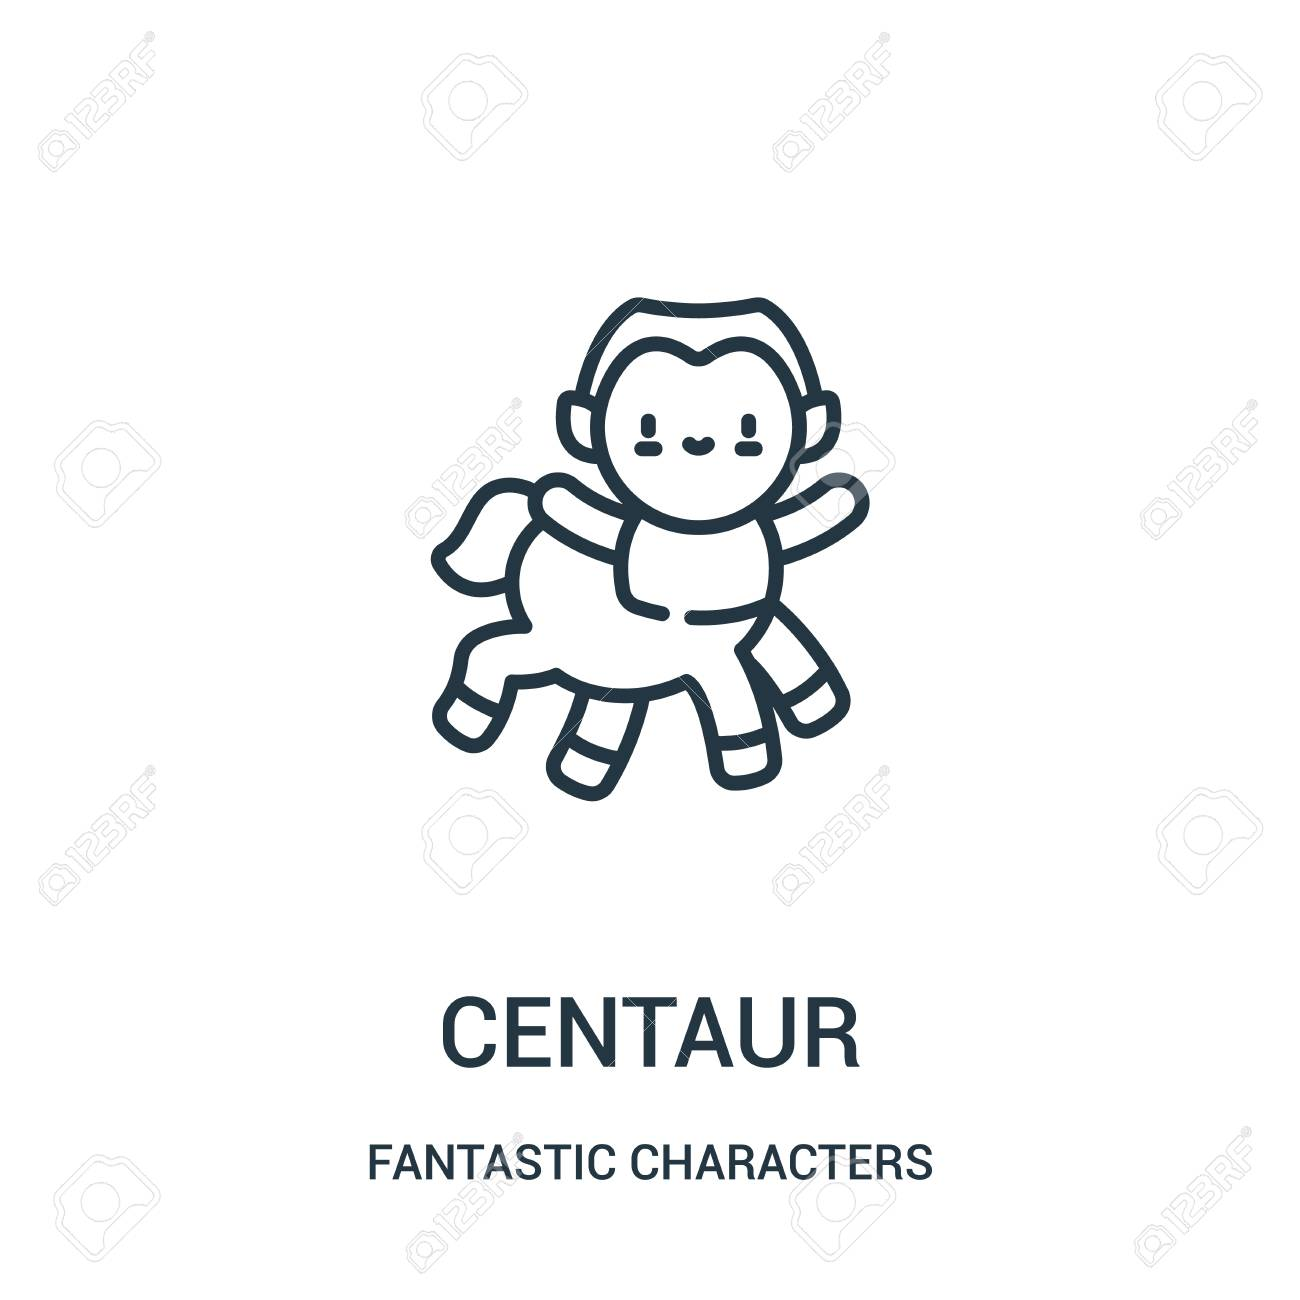 centaur icon vector from fantastic characters collection  Thin